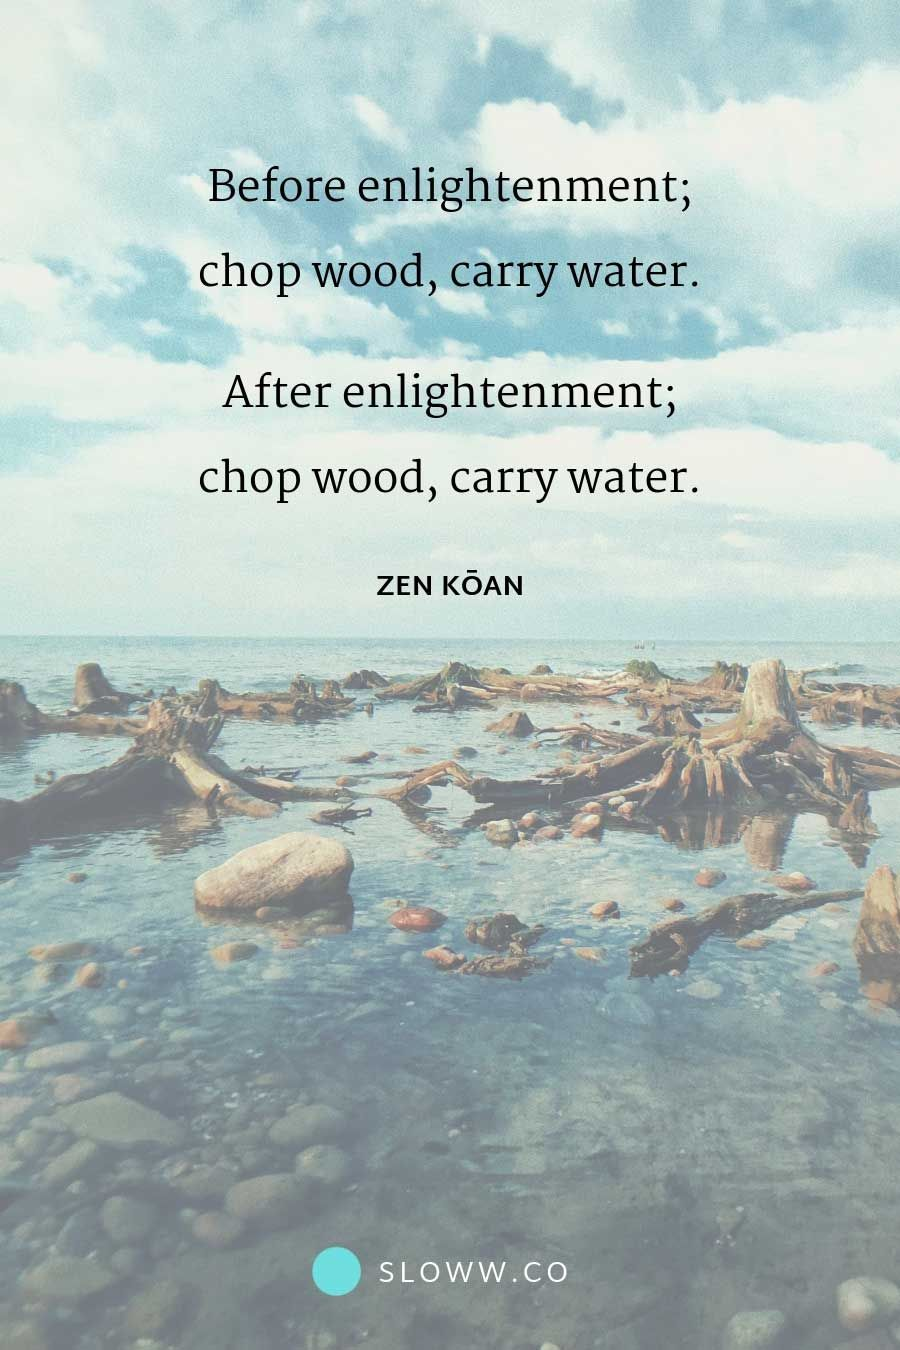 Enlightenment 3 Meanings Of Chop Wood Carry Water Into The Woods Quotes Enlightenment Quotes Enlightenment